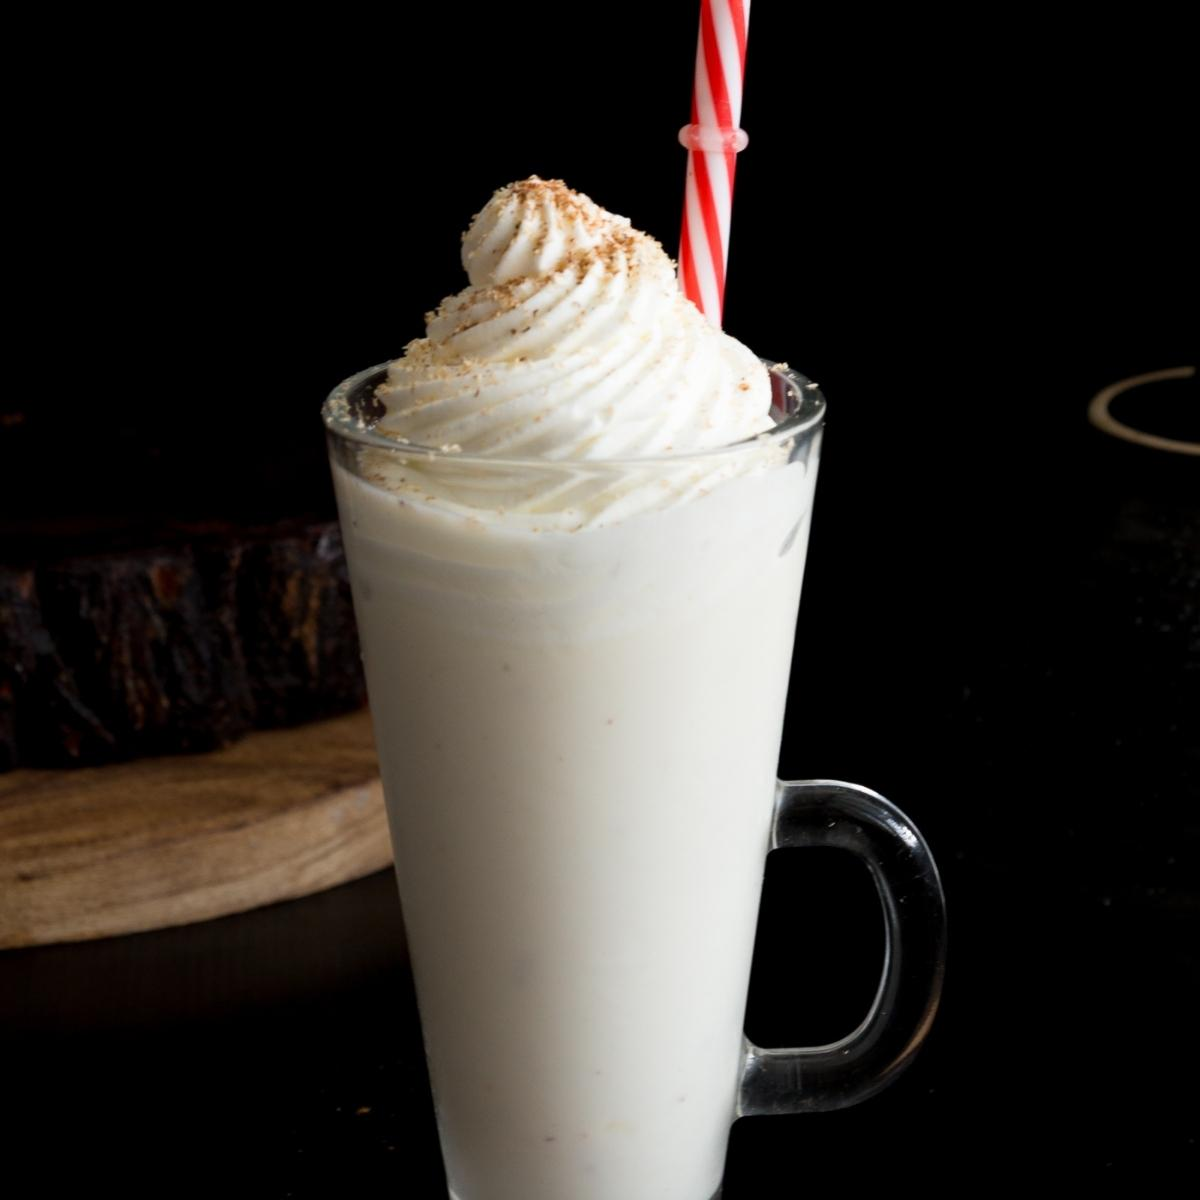 Drink topped with stabilized whipped cream